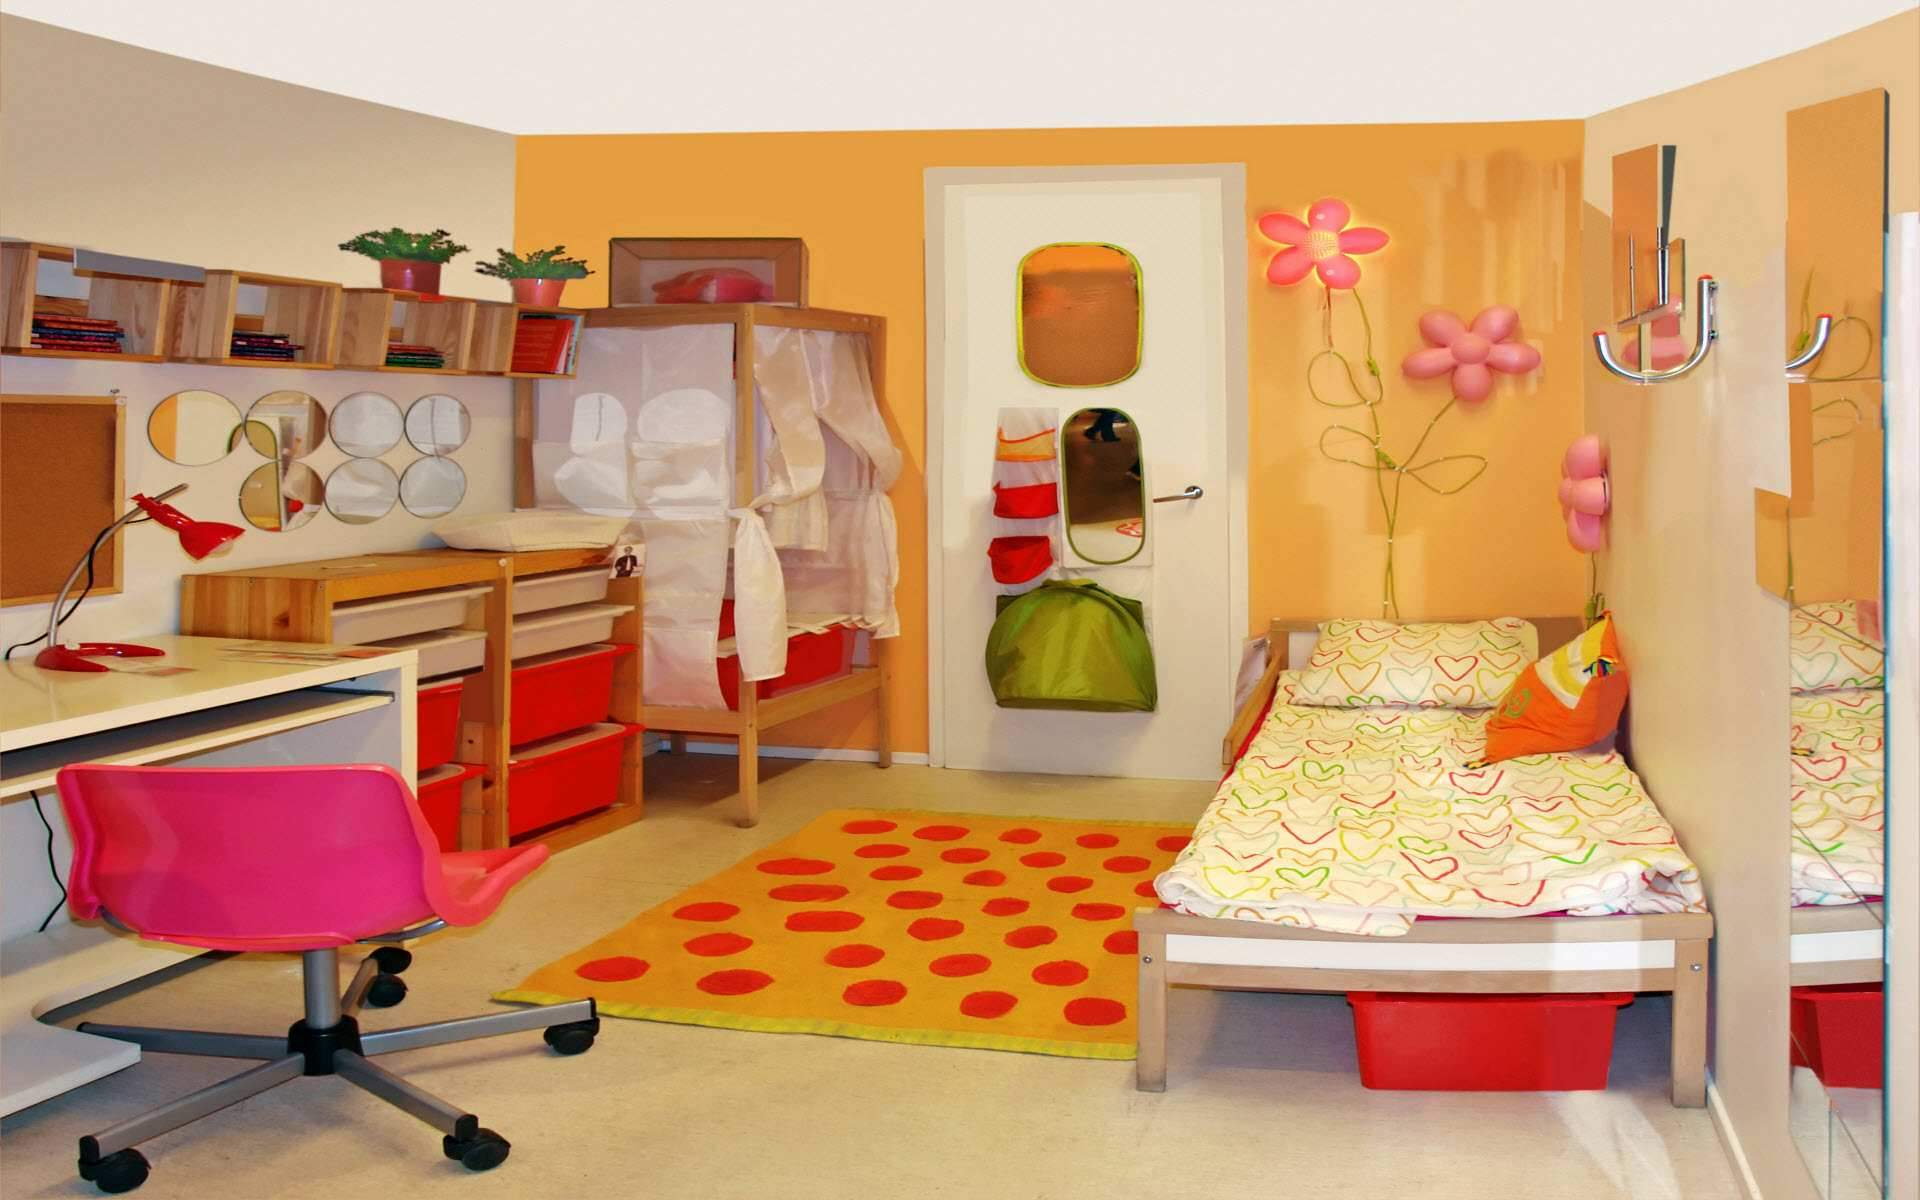 Unique small kids room decorating ideas image 012 small for Room decor ideas for toddlers